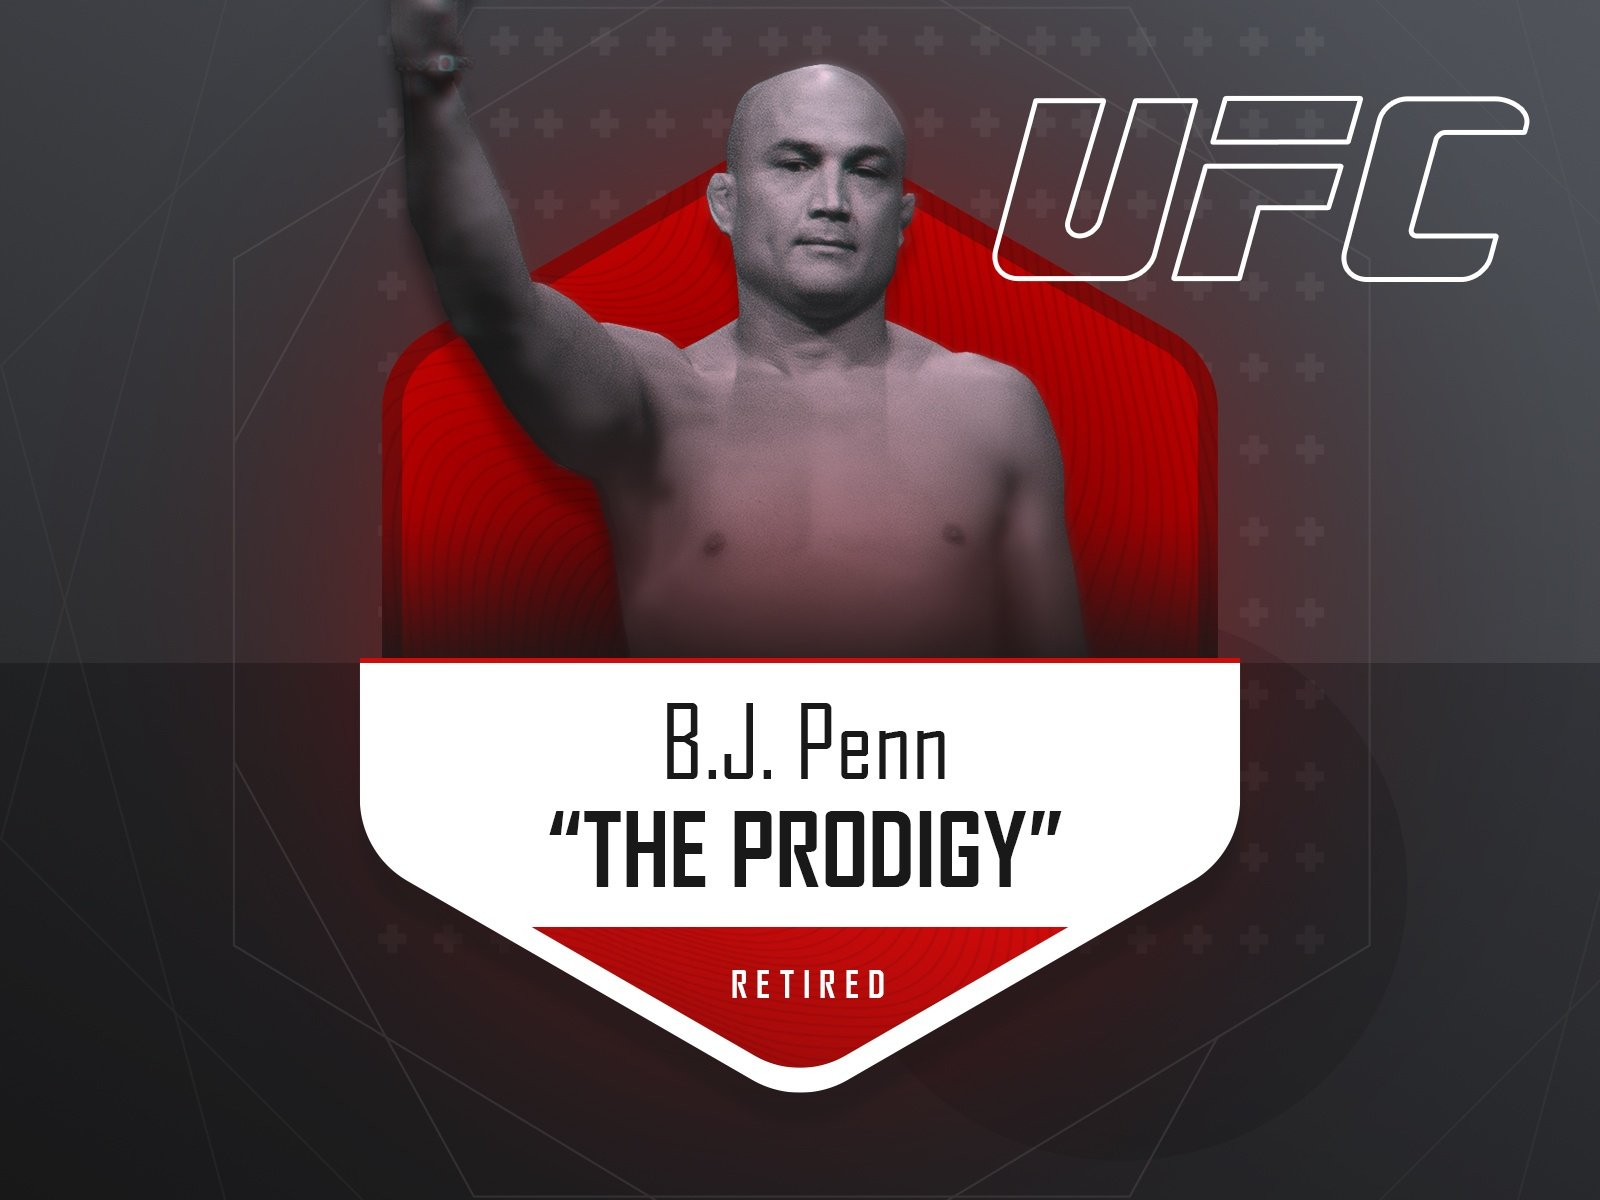 B.J. Penn - UFC fighter